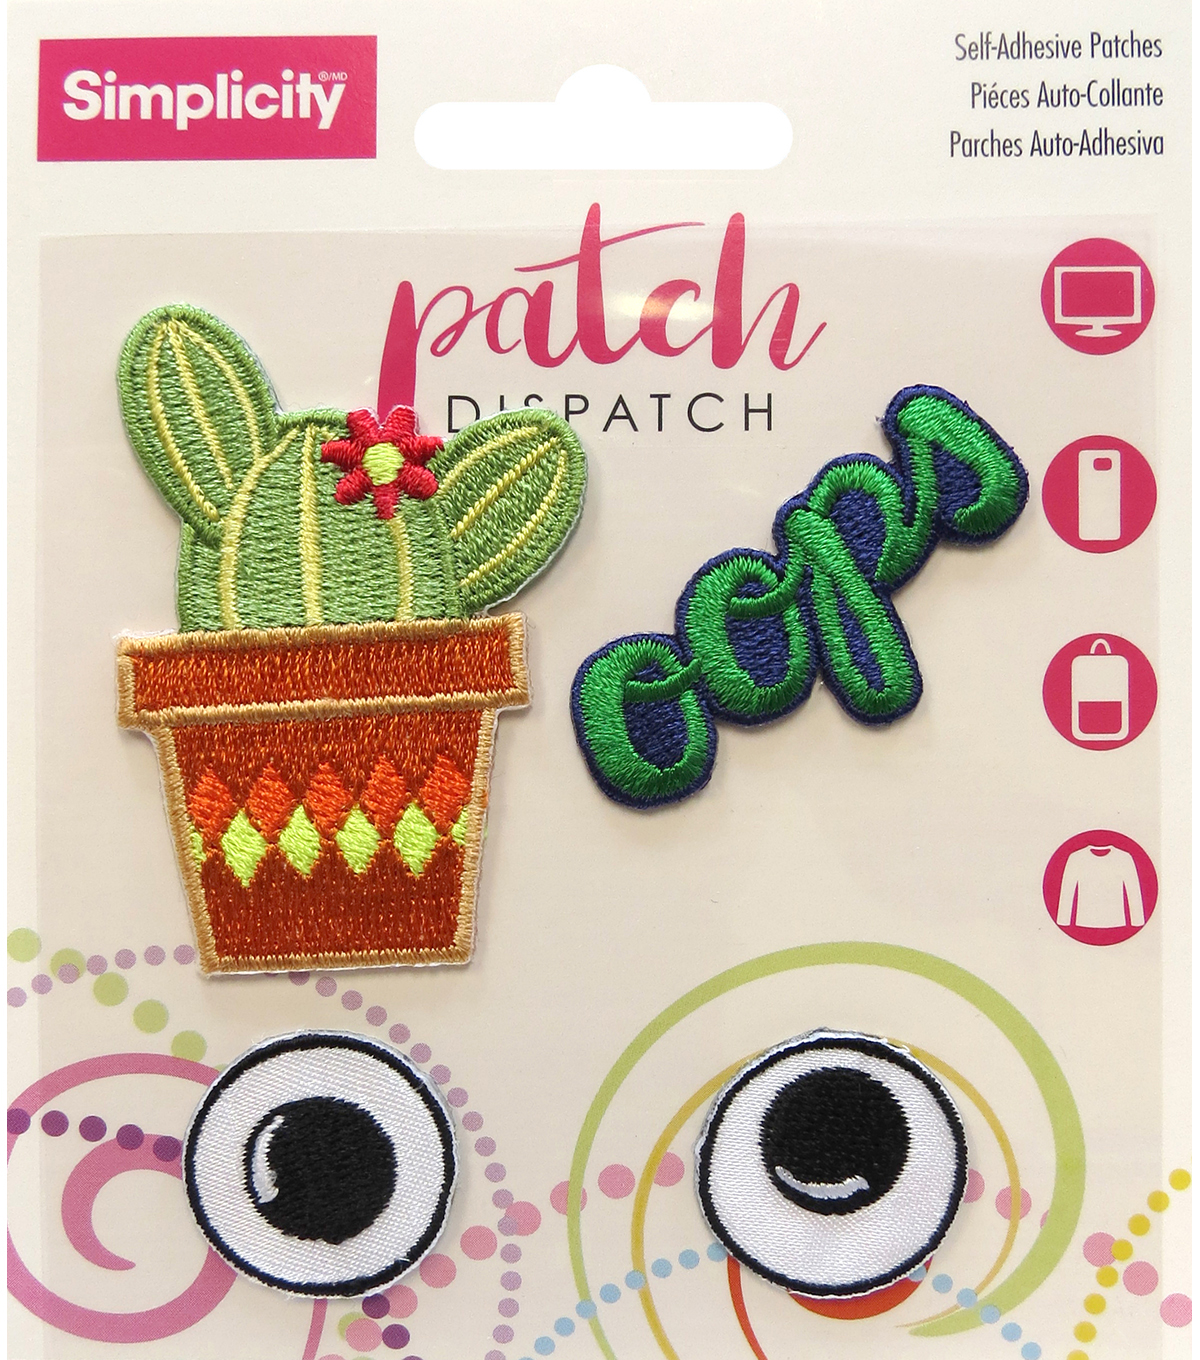 Simplicity® 4 Pack Embroidered Self-Adhesive Patches-Cactus